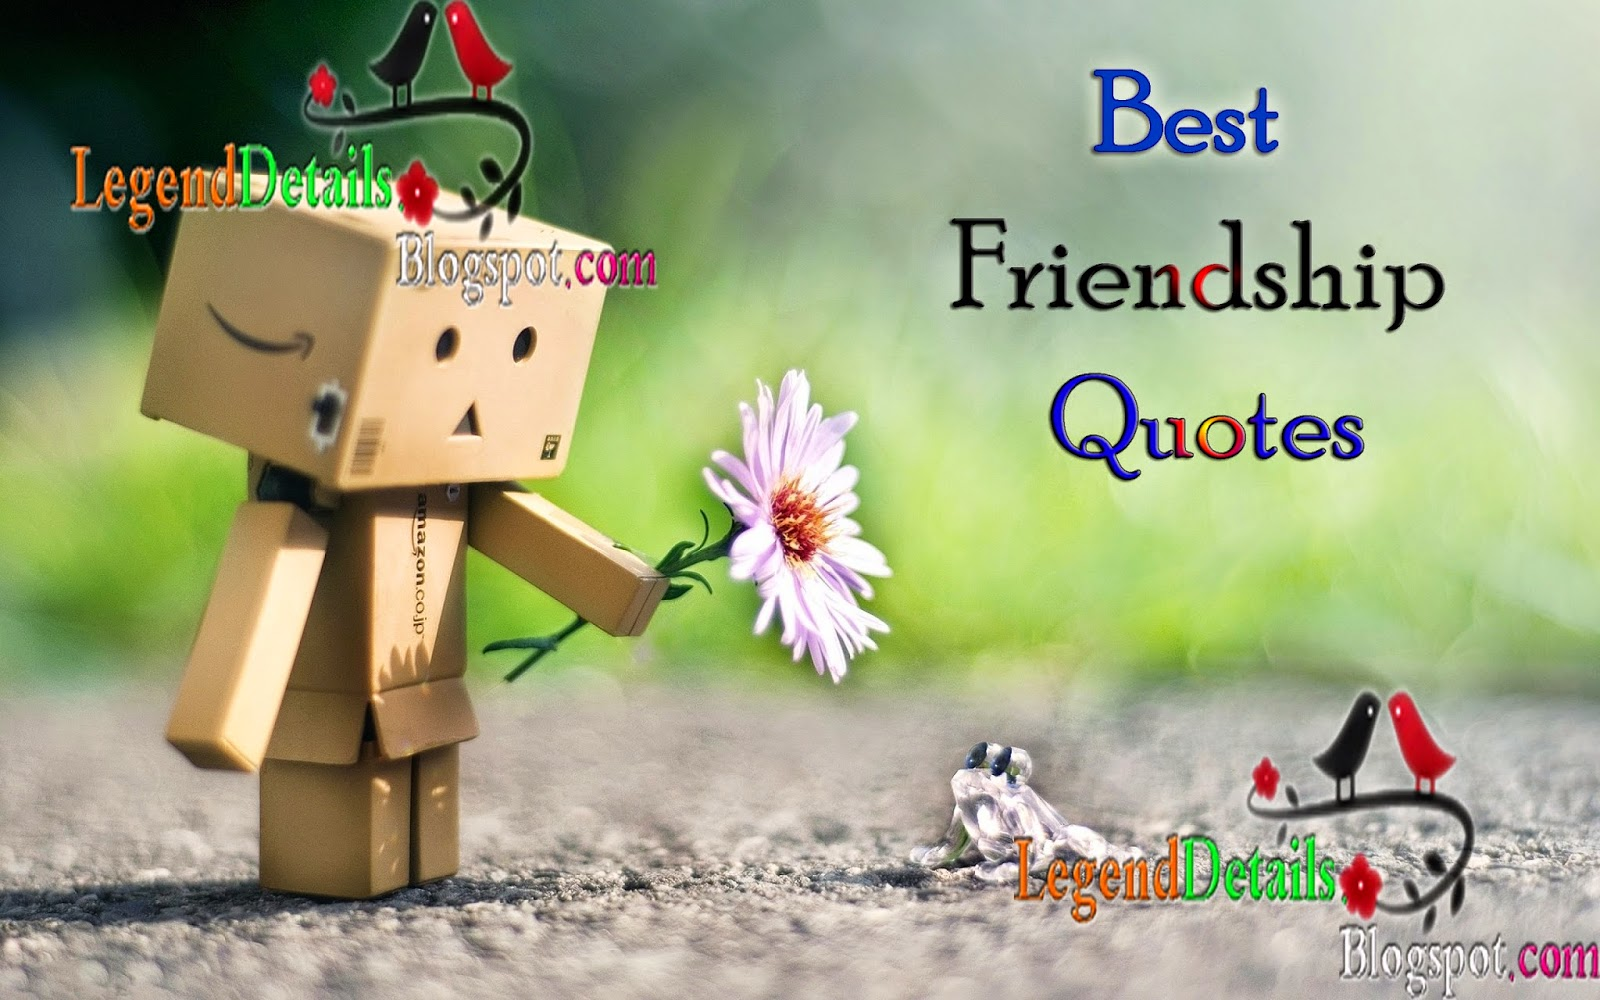 Beautiful Quotes For Best Friends With Images : Best friendship quotes legendary